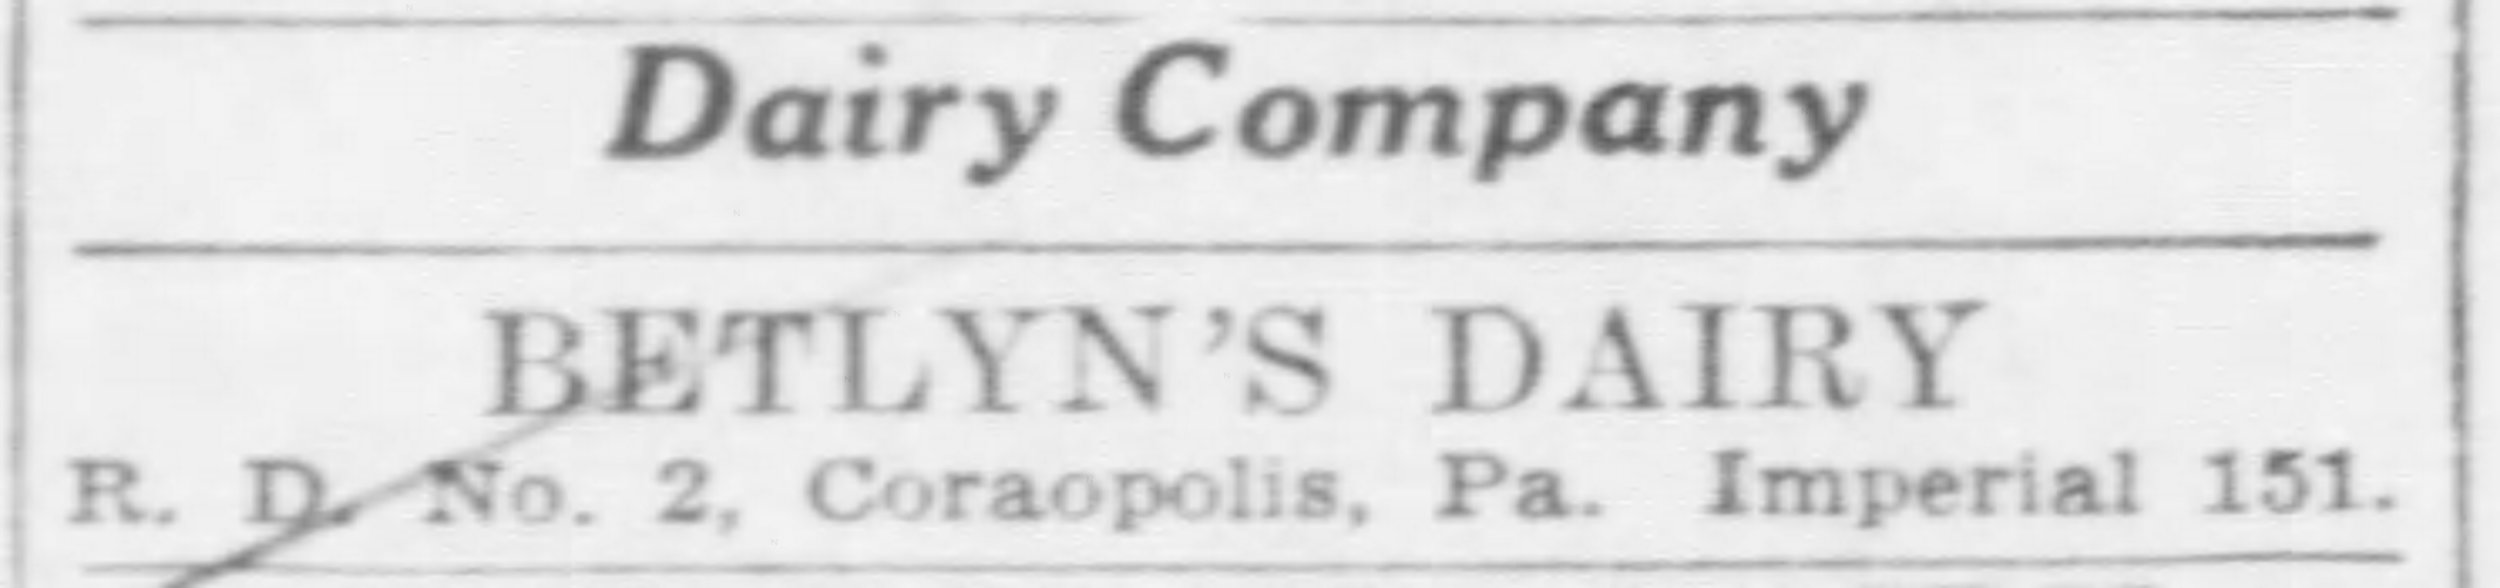 Pittsburgh Post Gazette, January 1, 1934 (vol. 7 , no. 132, p. 38).